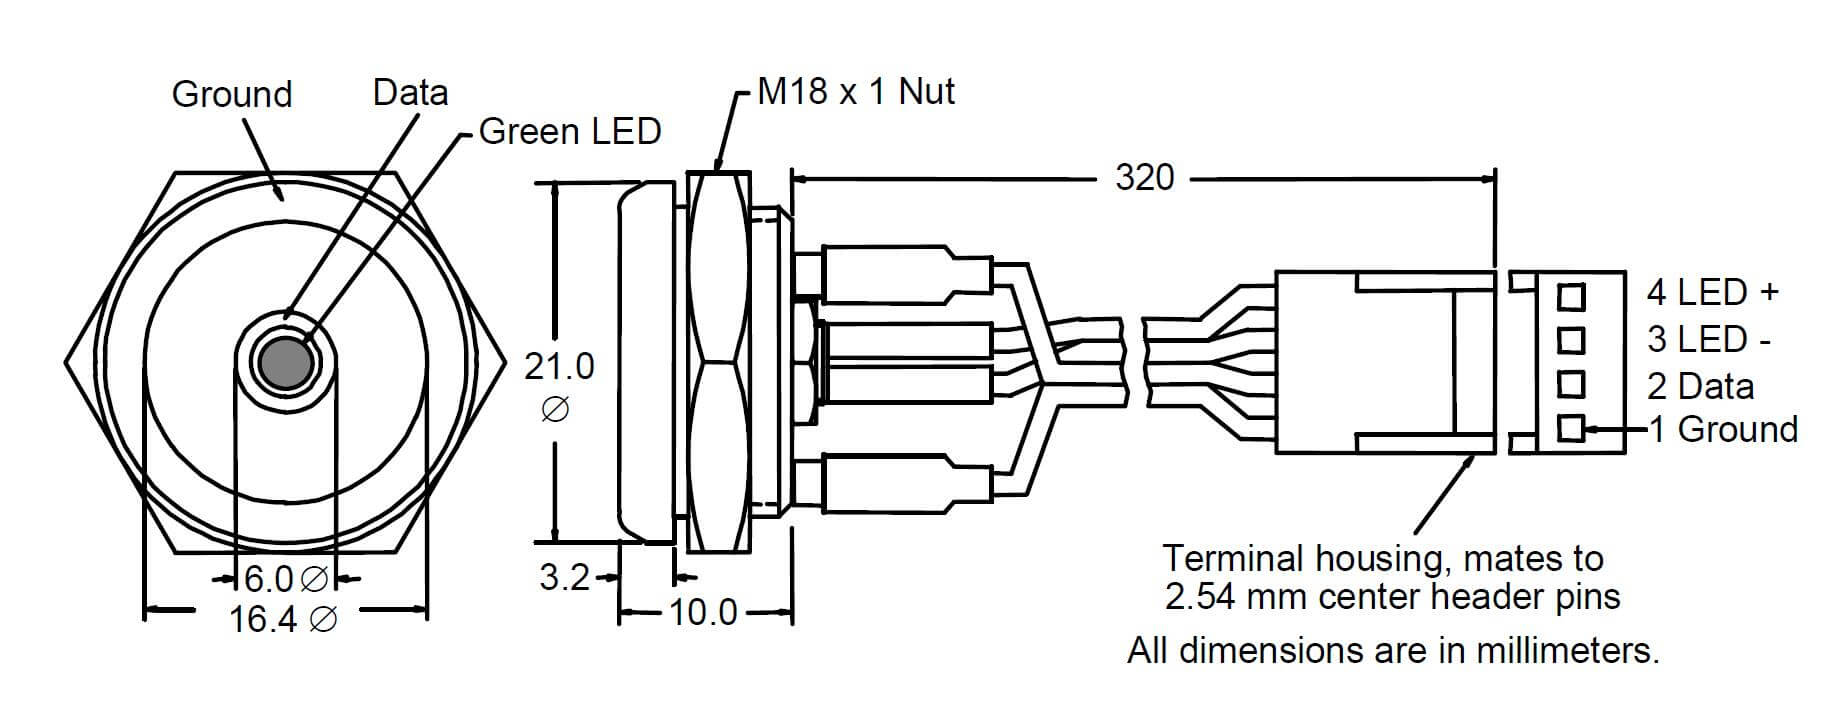 Diagram and Wirings of DS9092L+ iButton Probe with LED